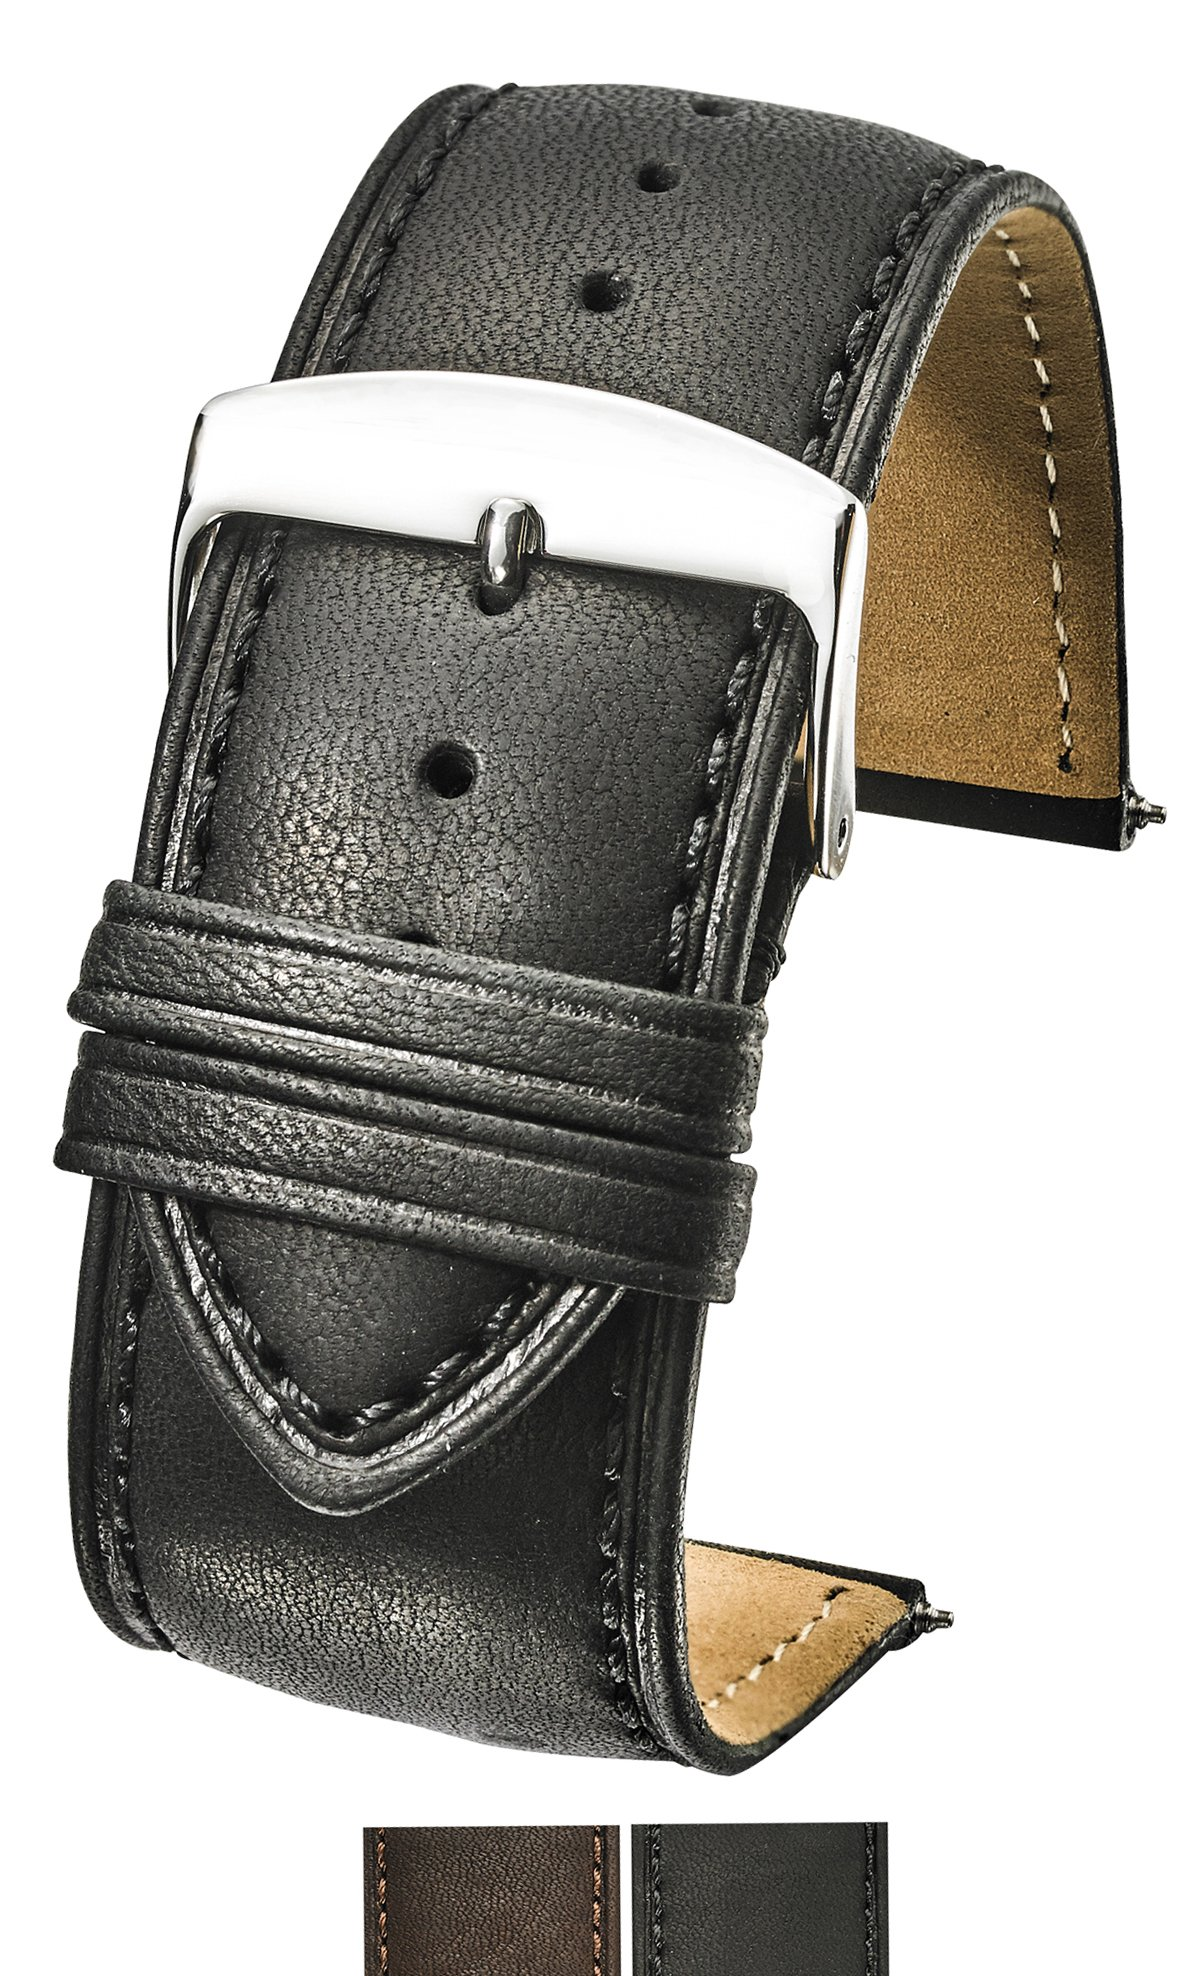 Genuine Leather Watch Band (fits Wrist Sizes 6-7 1/2 inch)- Black - 30mm